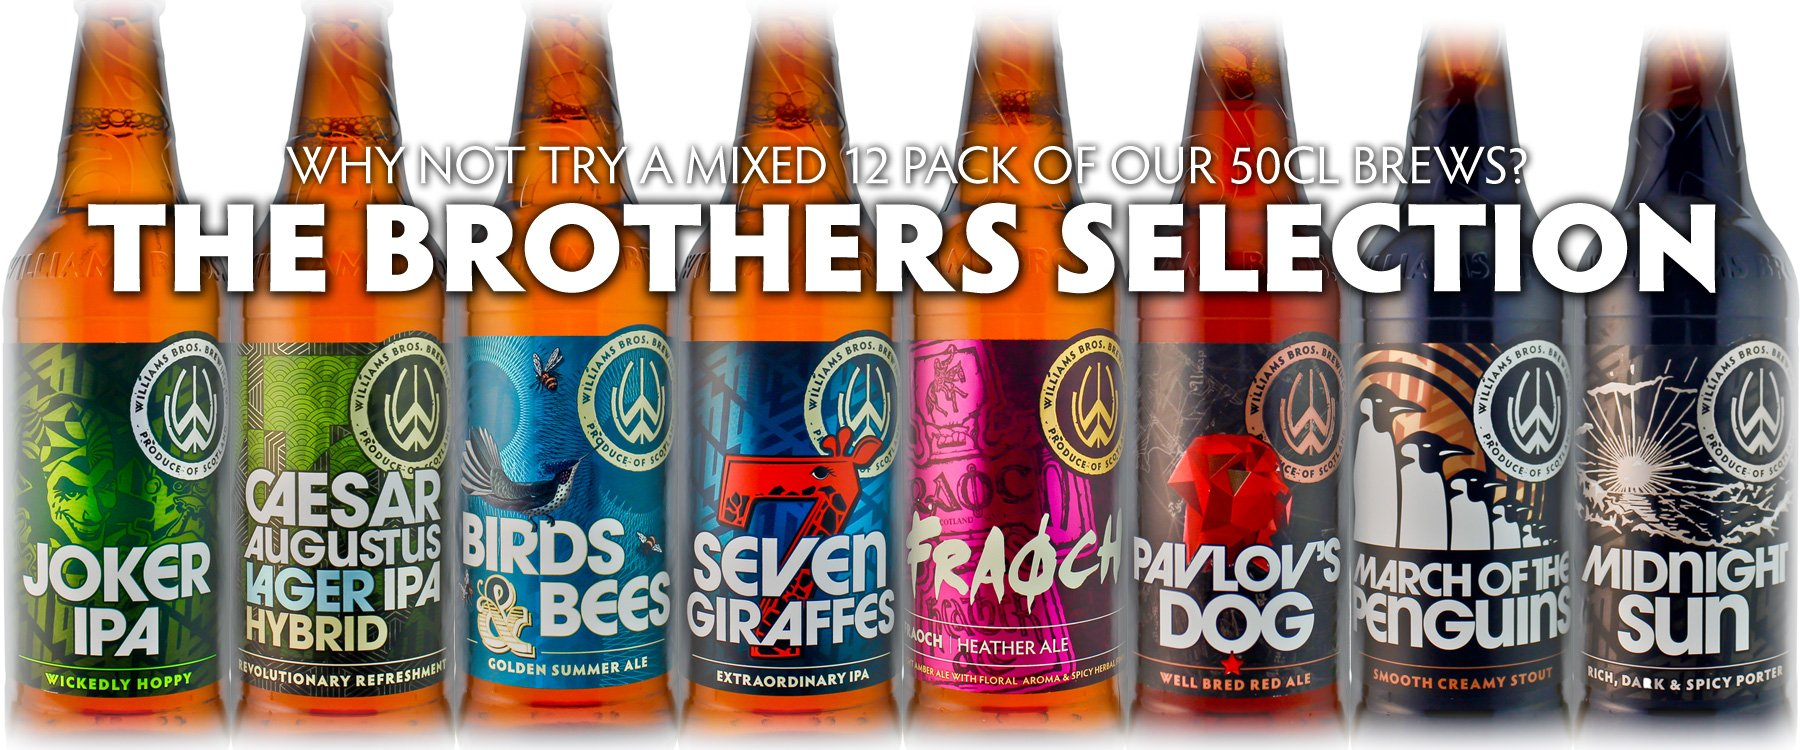 Buy The Brothers Selection